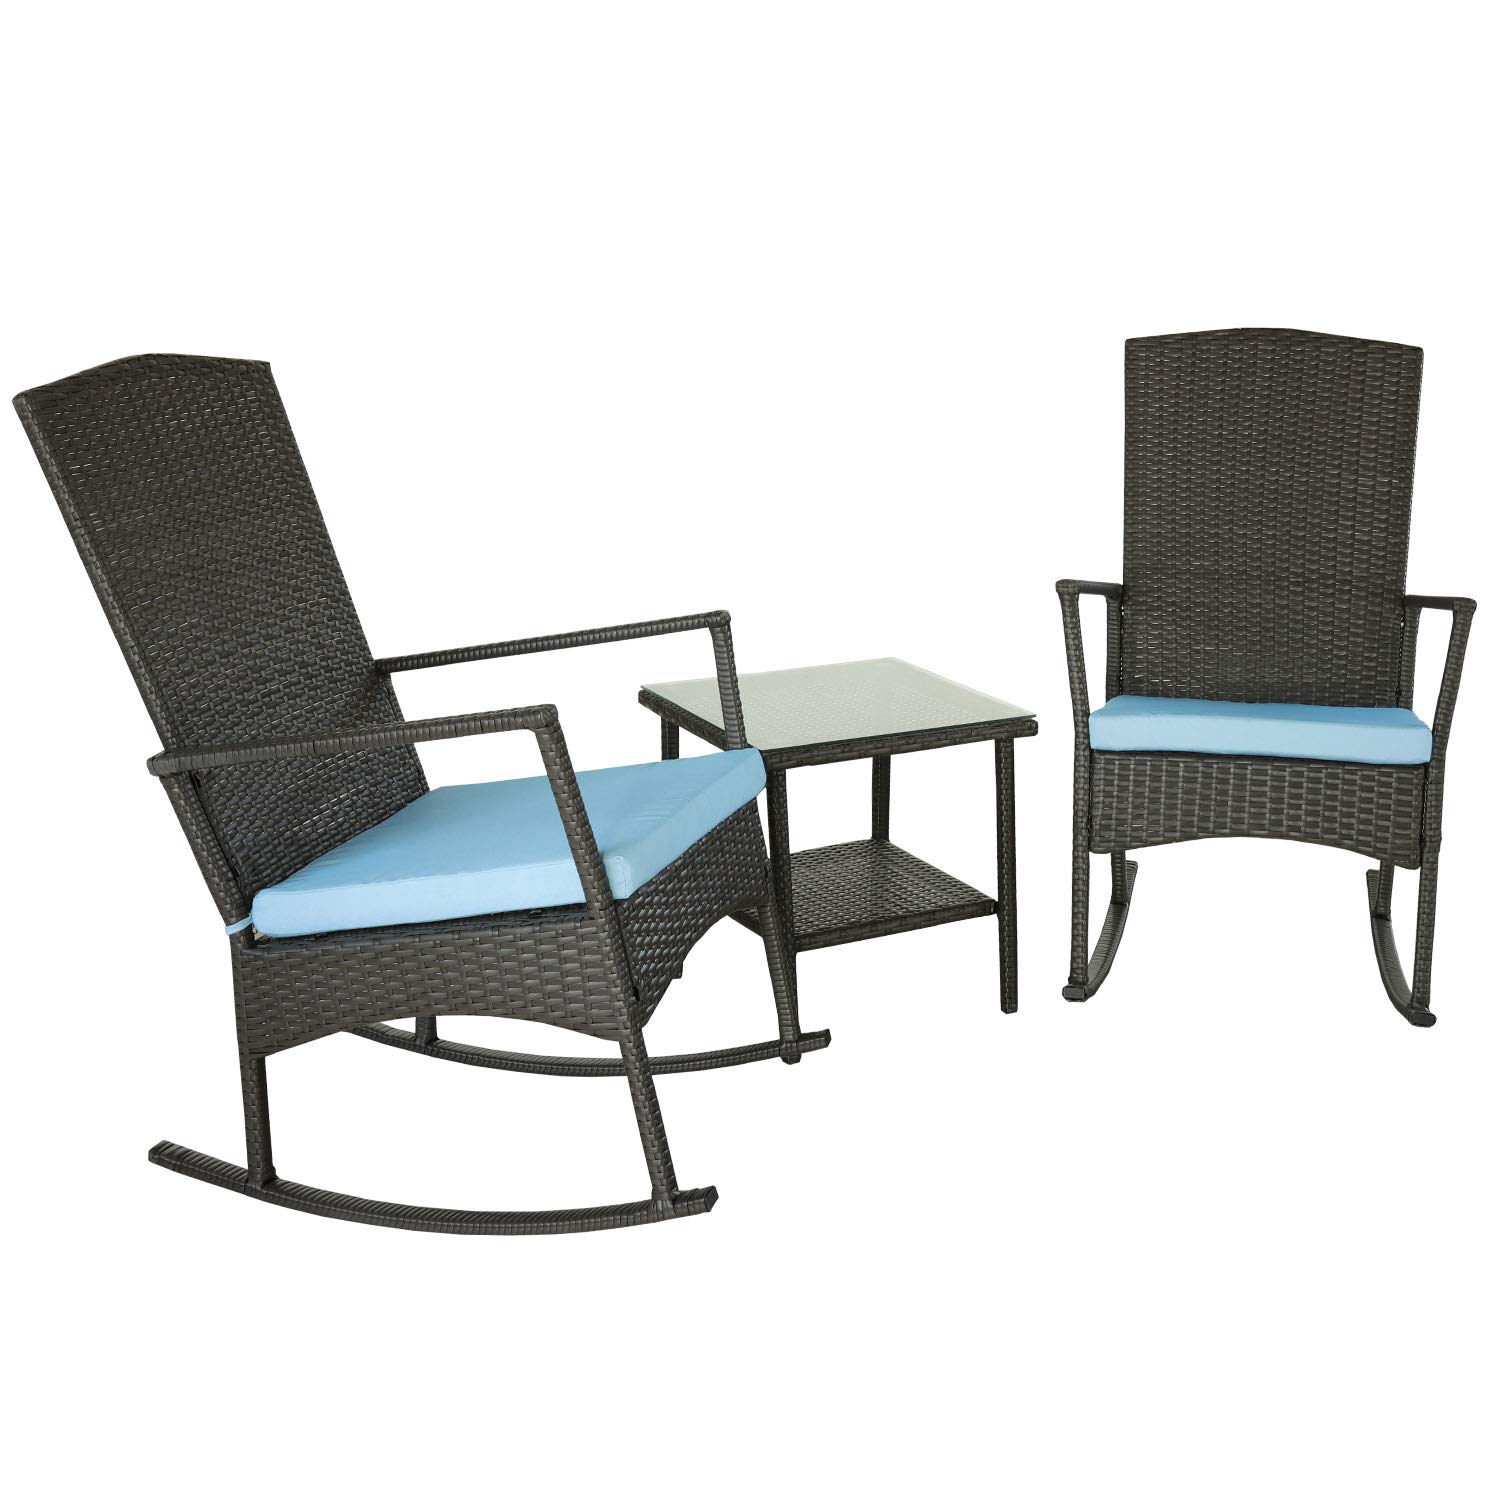 Rattaner Wicker Rocking Chair Set-3 Piece Outdoor Patio Dark Brown Rattan Furniture with Glass Coffee Side Table,Washable Blue Cushion